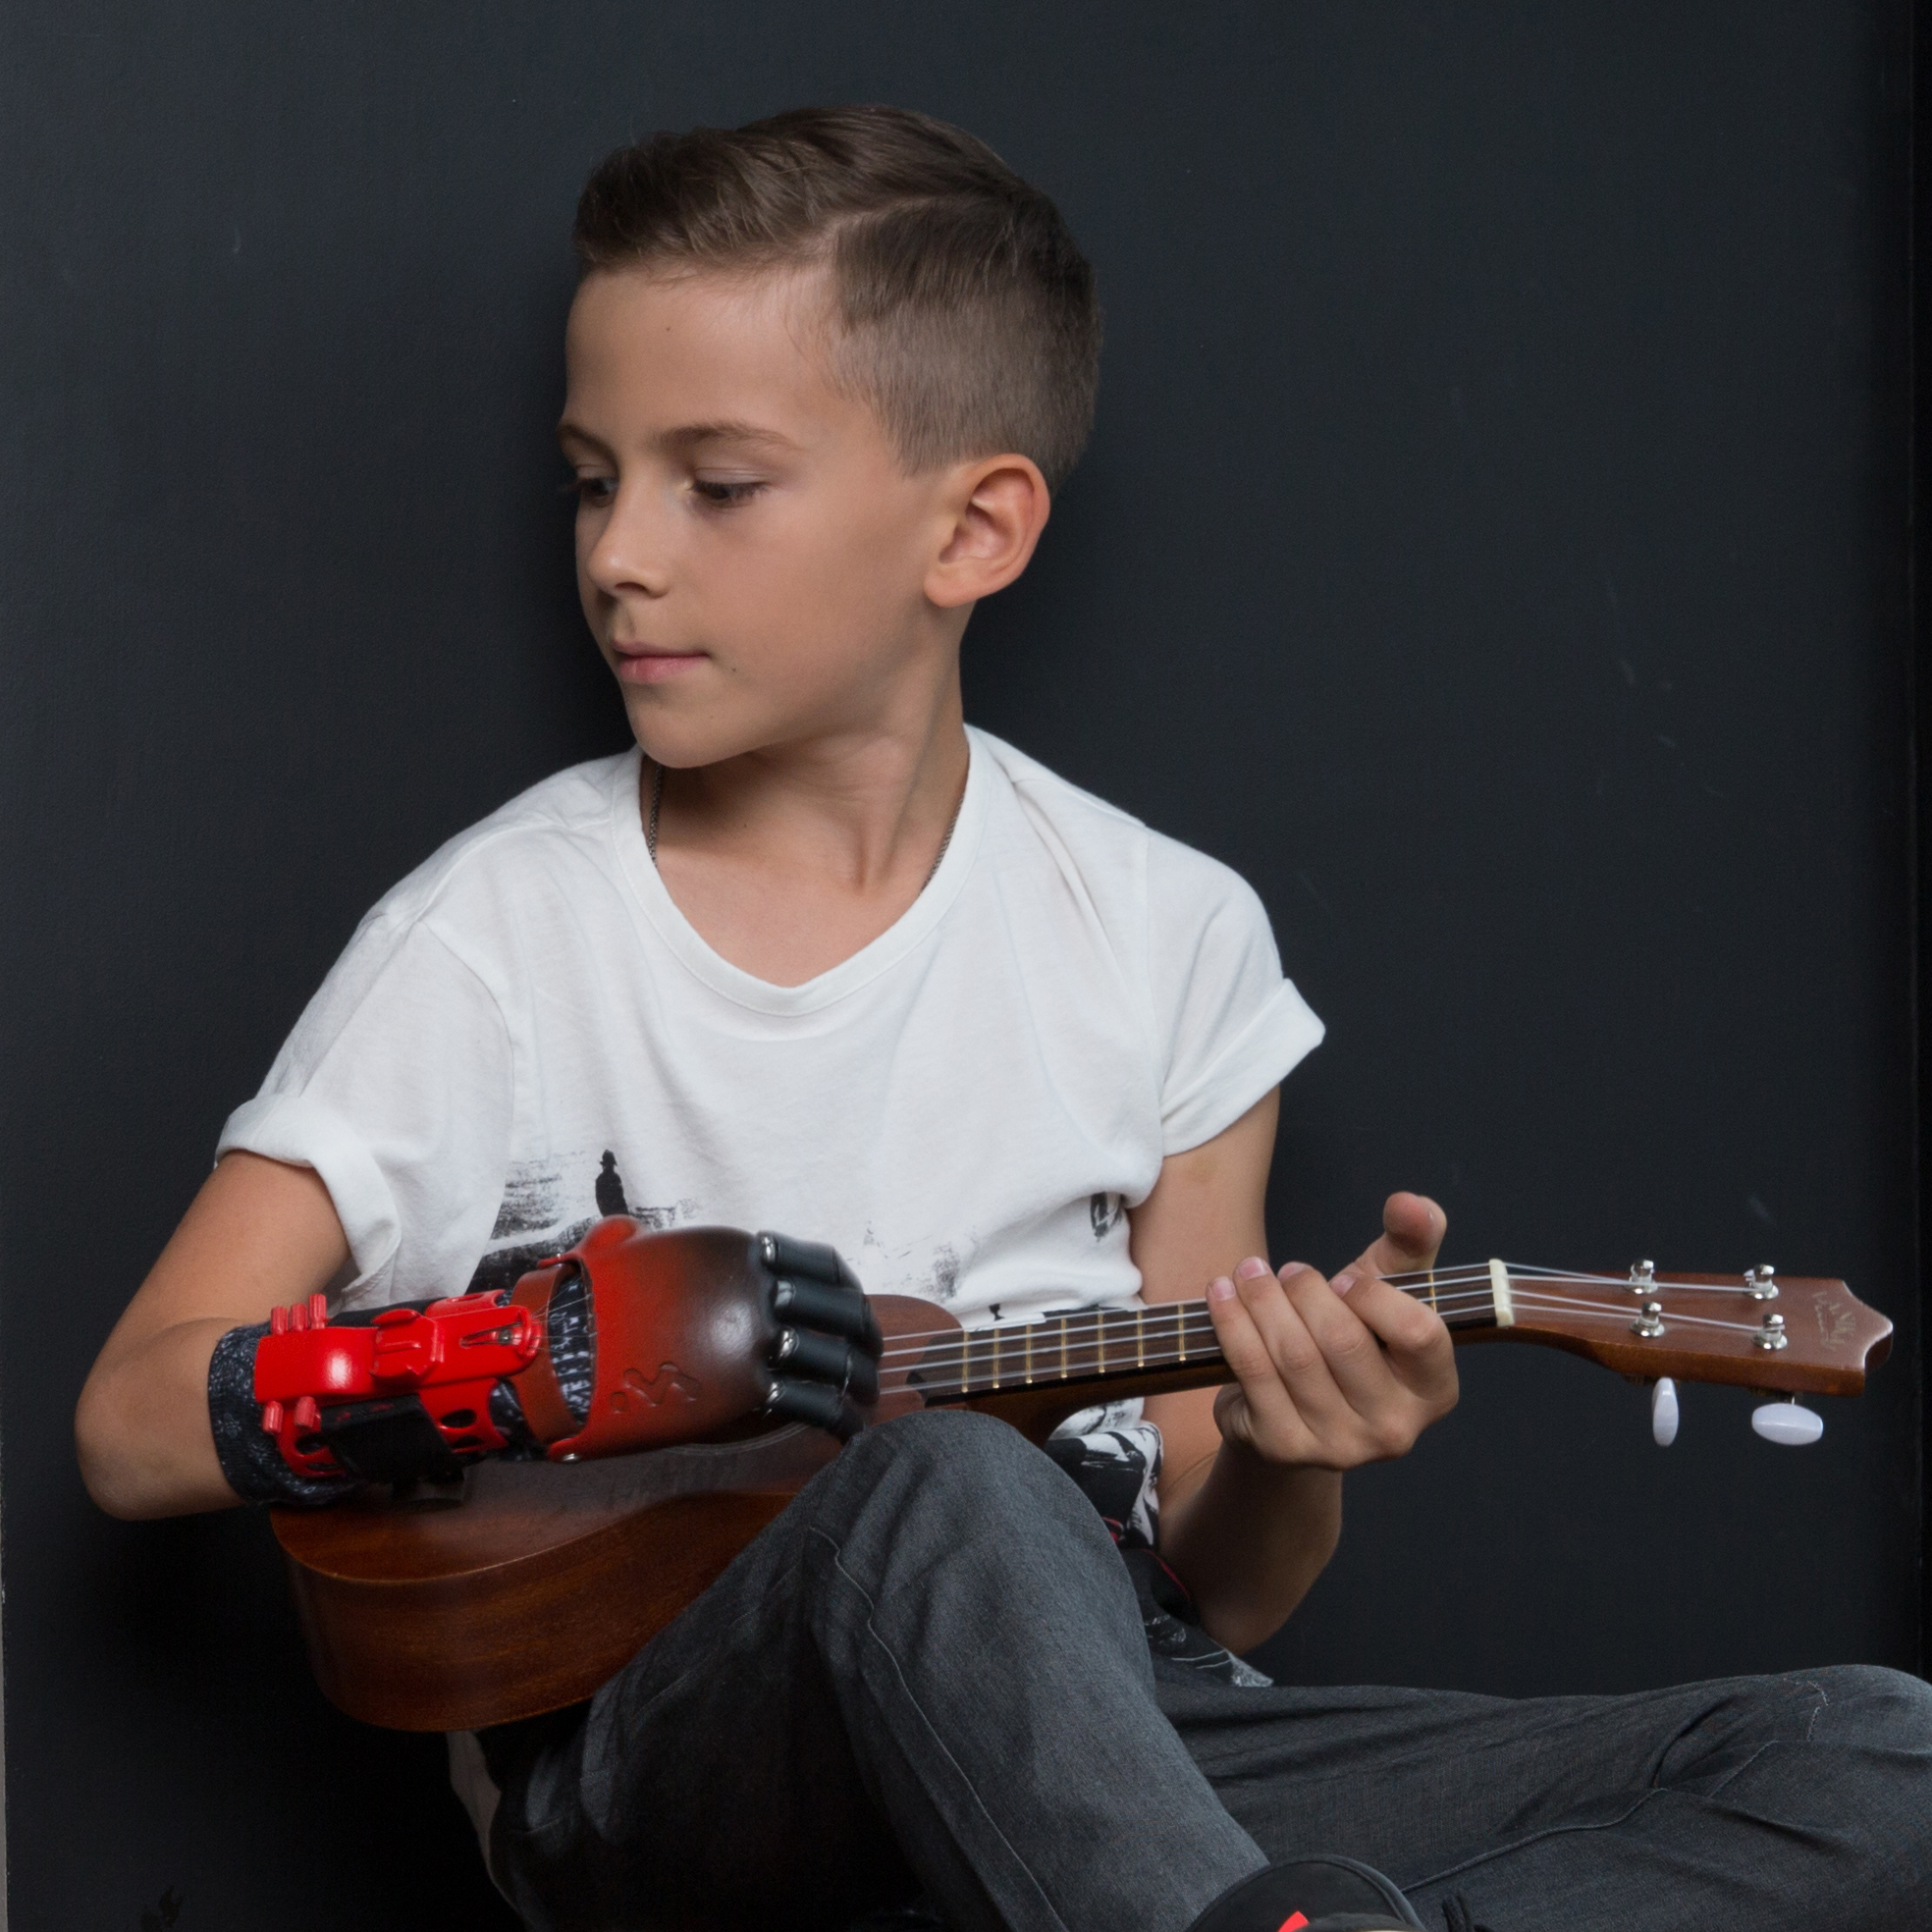 Photo of a boy playing the guitar with a Motorica prosthetic hand